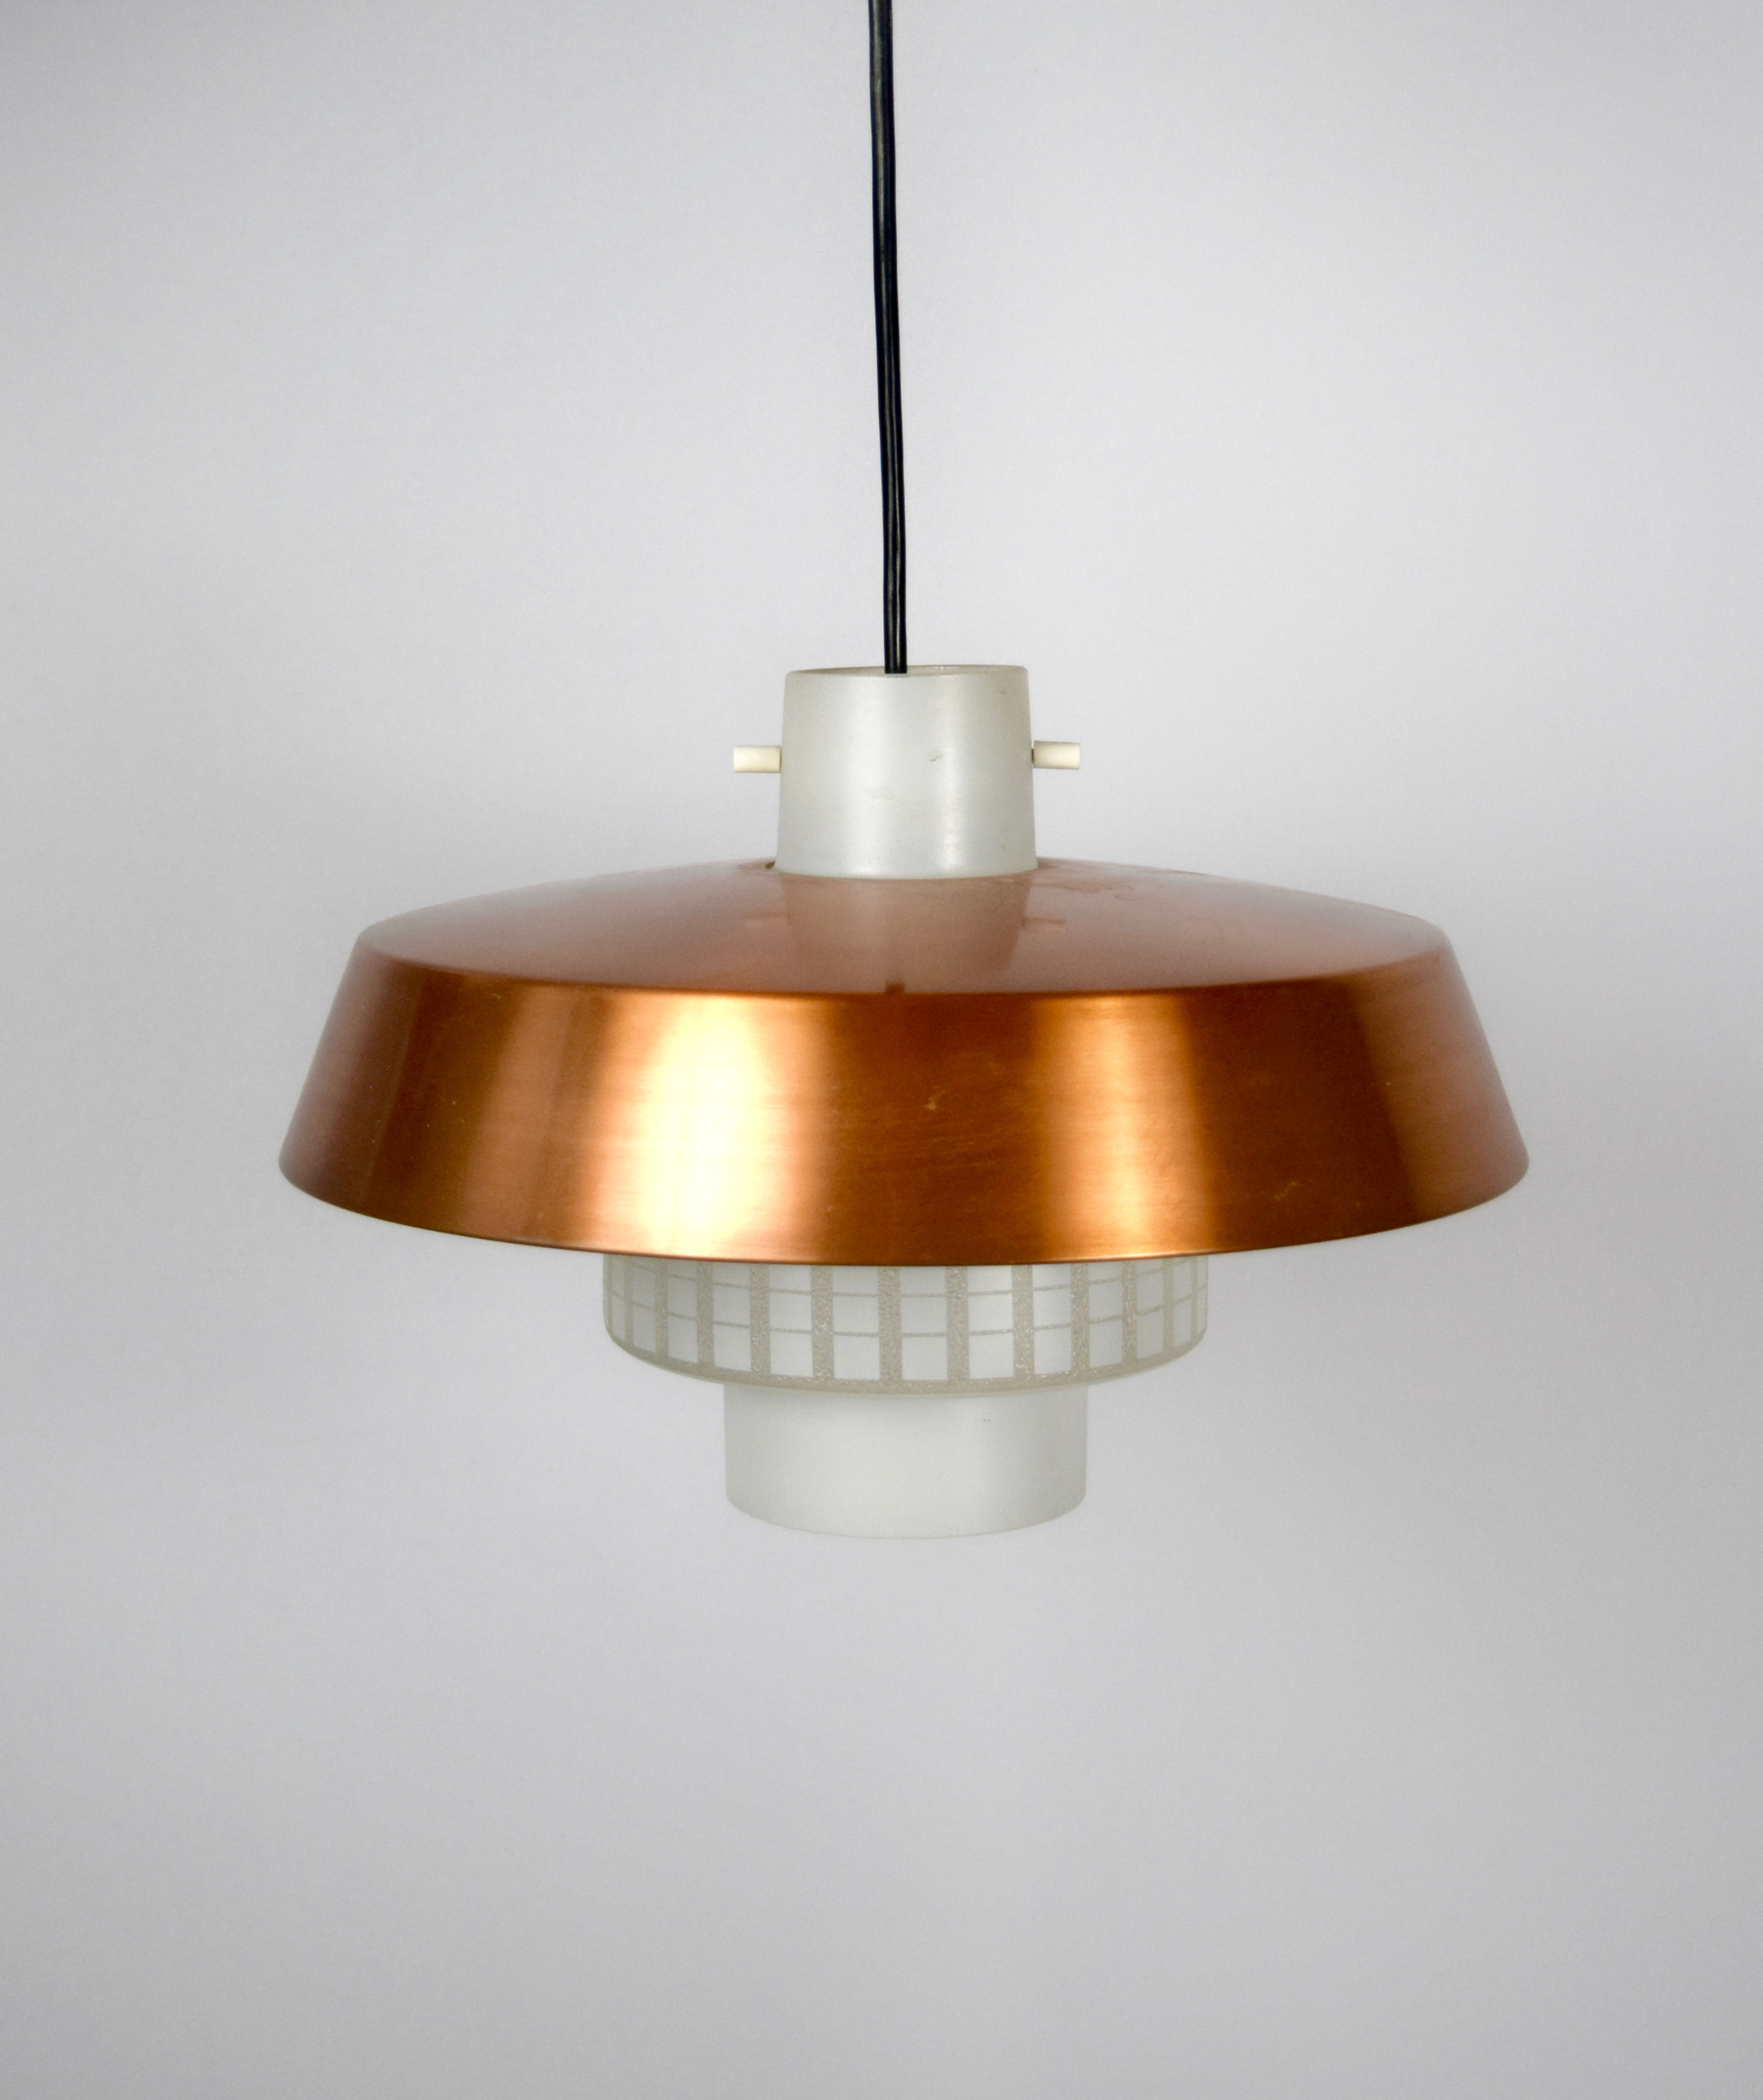 Vintage Ceiling Lamp in the style of Louis Poulsen